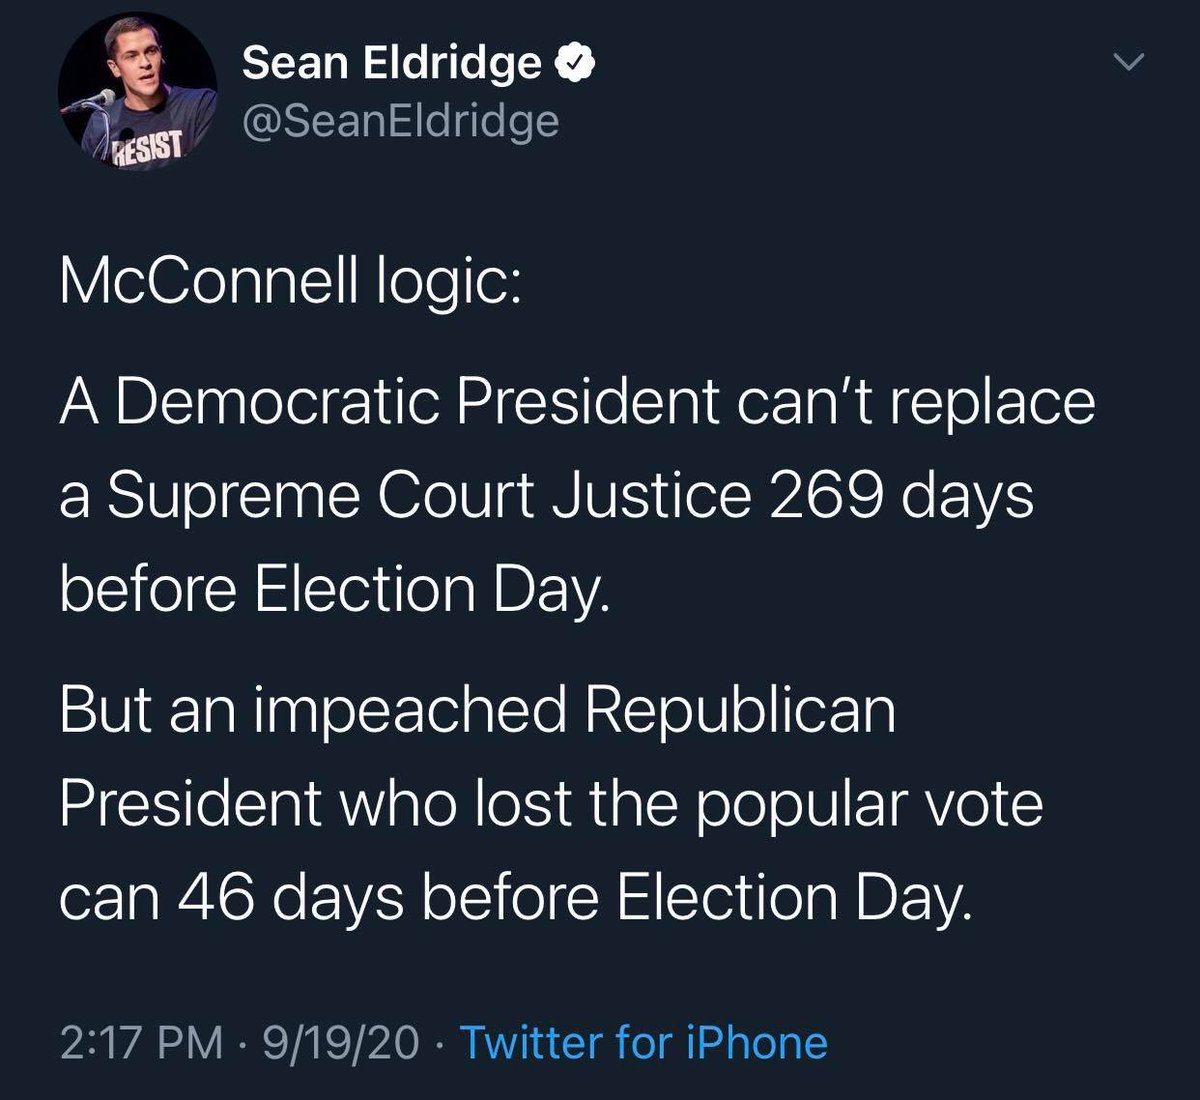 #MitchMcConnellIsAHypocrite #PeoplesVote #HonorTruthHonorRuth https://t.co/RBbFmY4ATO https://t.co/Ppn4rhwZyJ